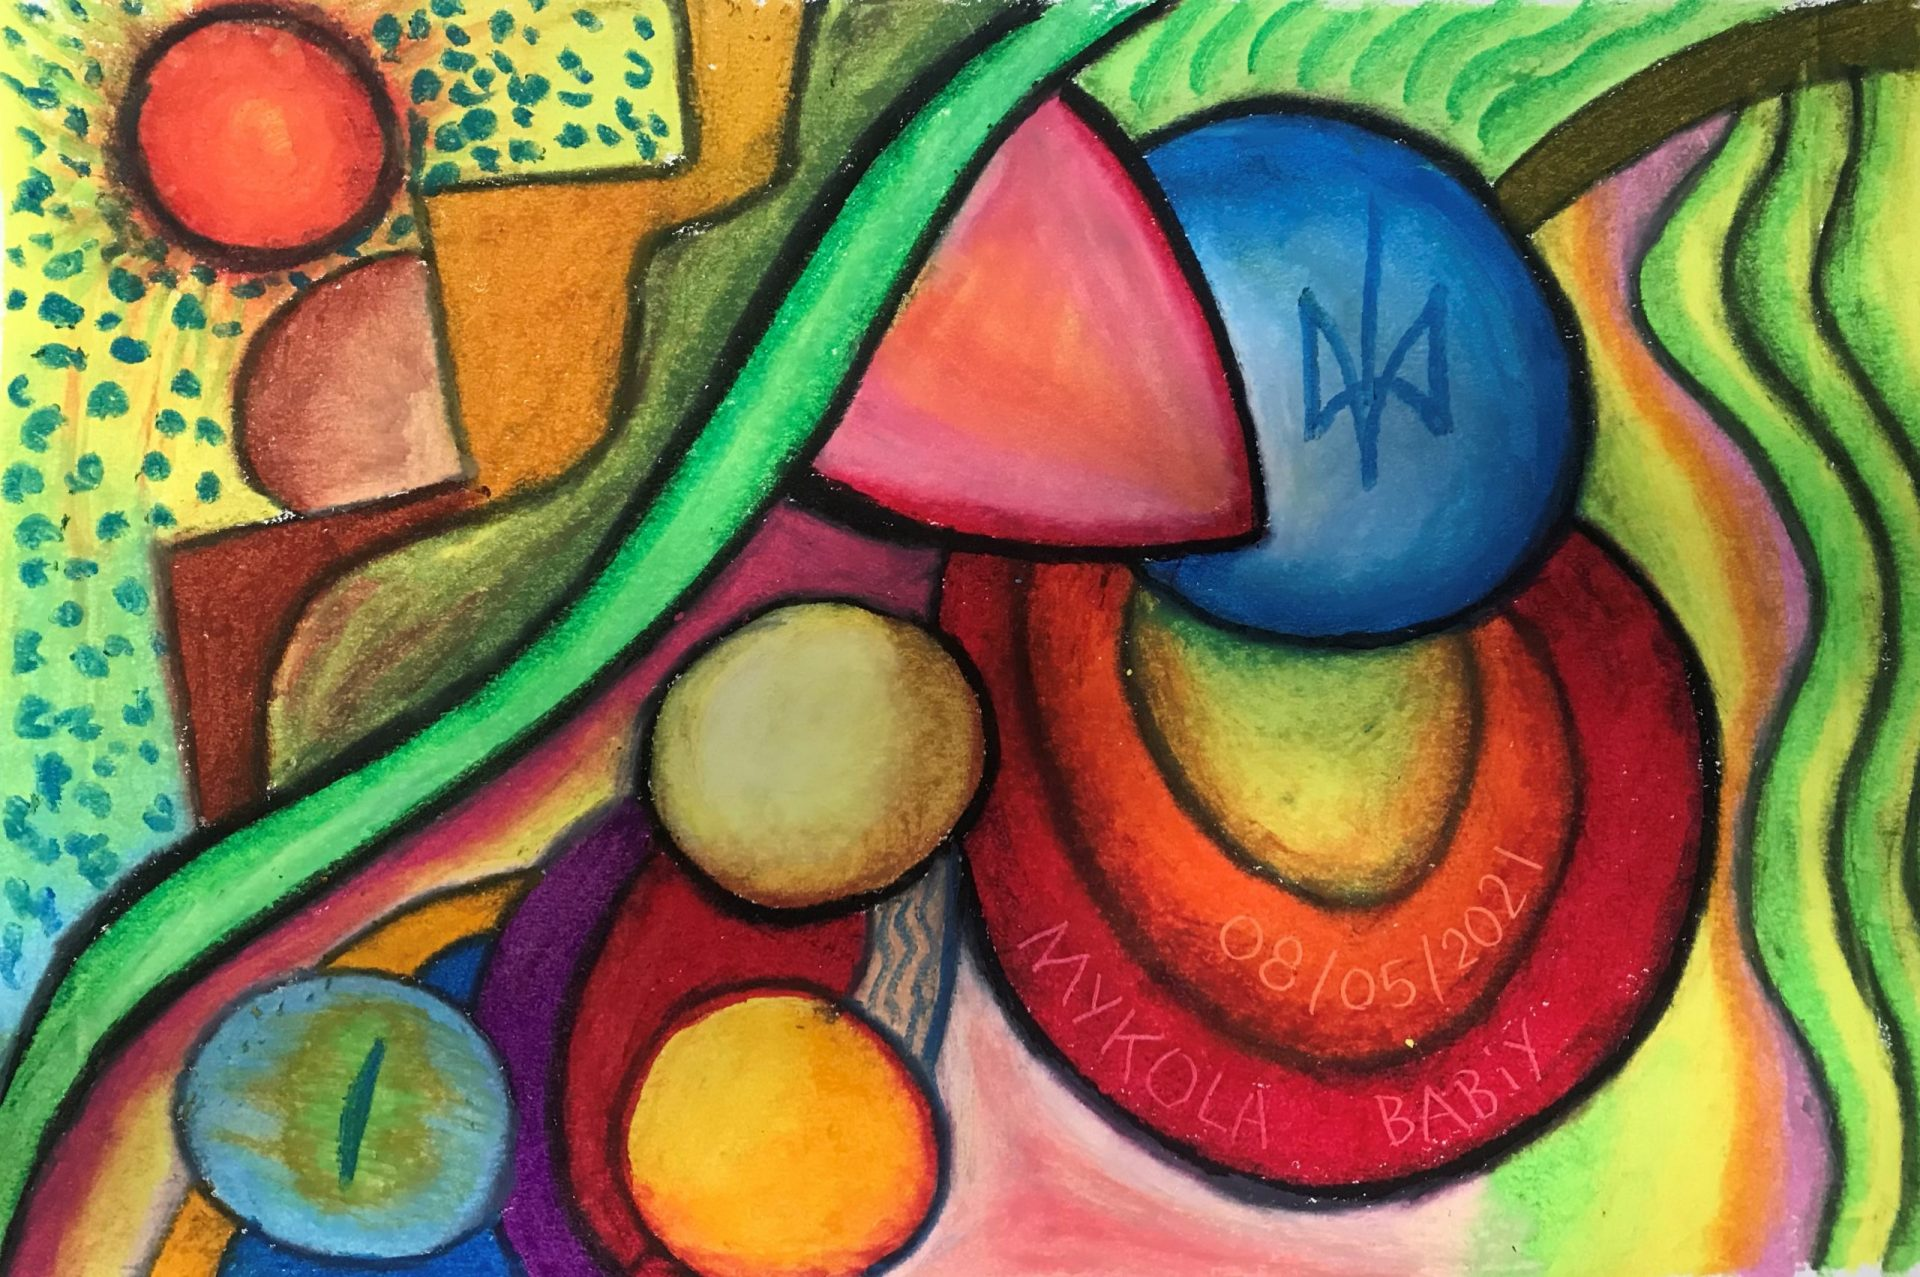 Abstraction. Oil pastels. Practice